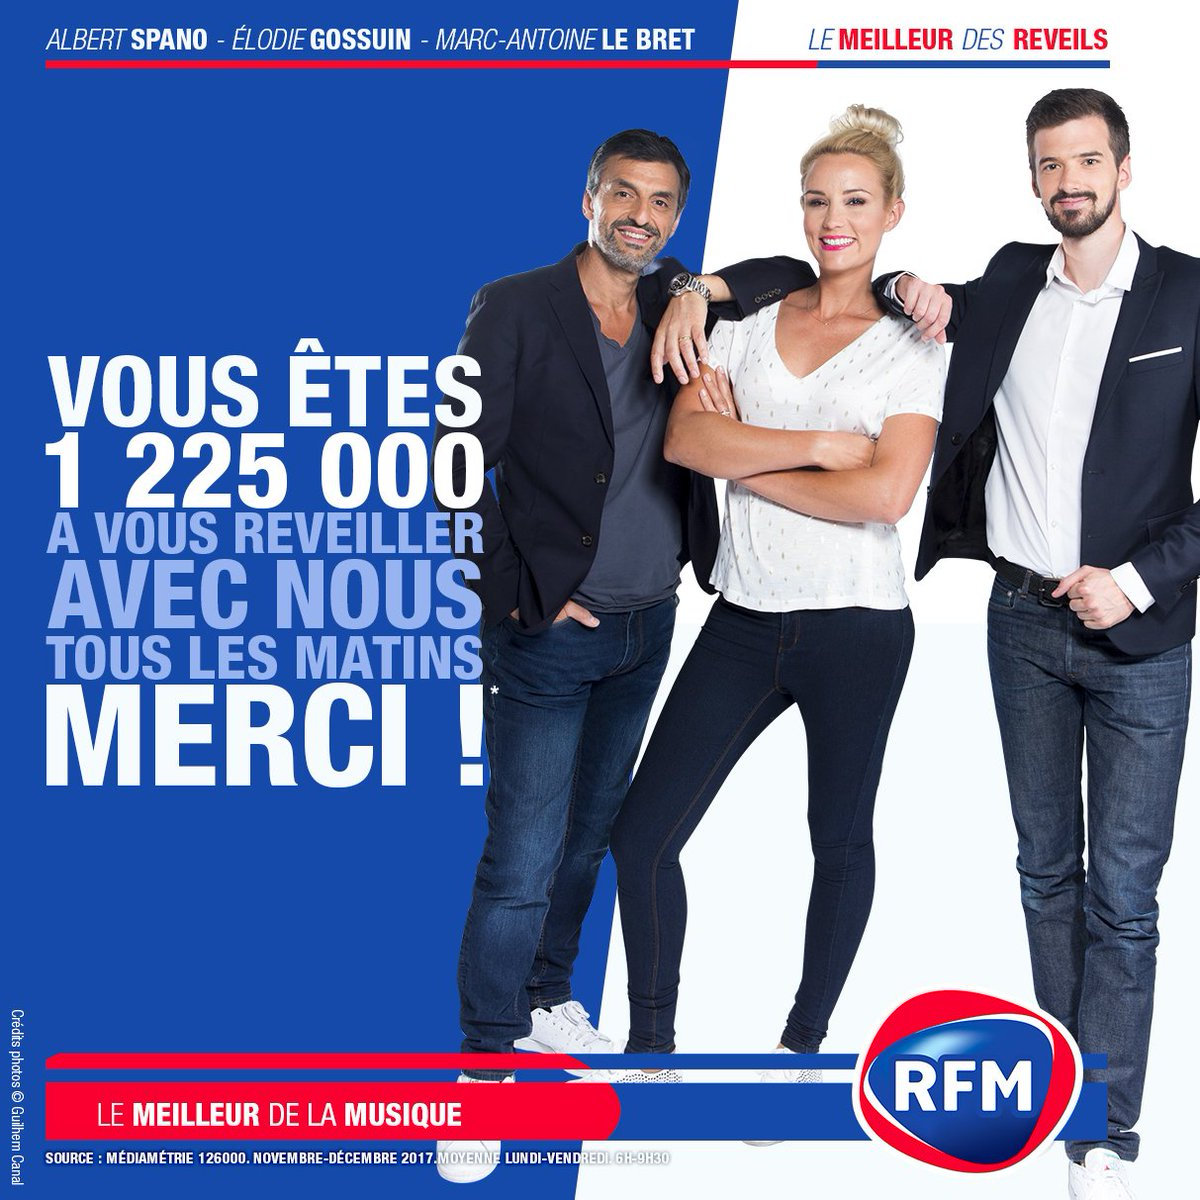 #RFMMatin Latest News Trends Updates Images - RFMFrance